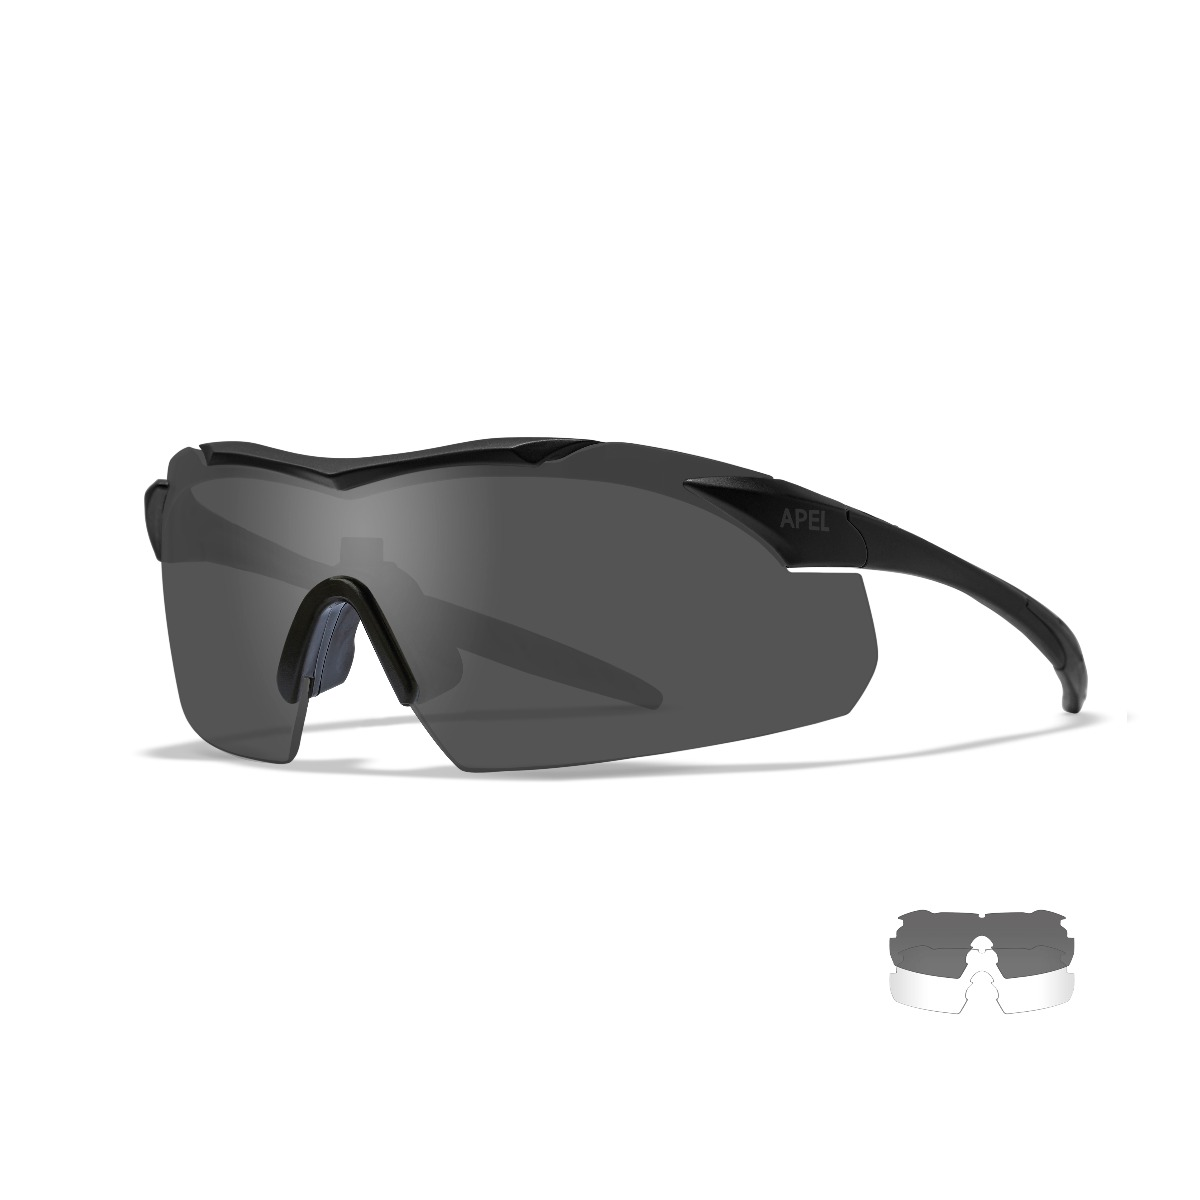 WILEY X Grey/Clear Vapor APEL Safety Glasses w/Black Frame - Size Small